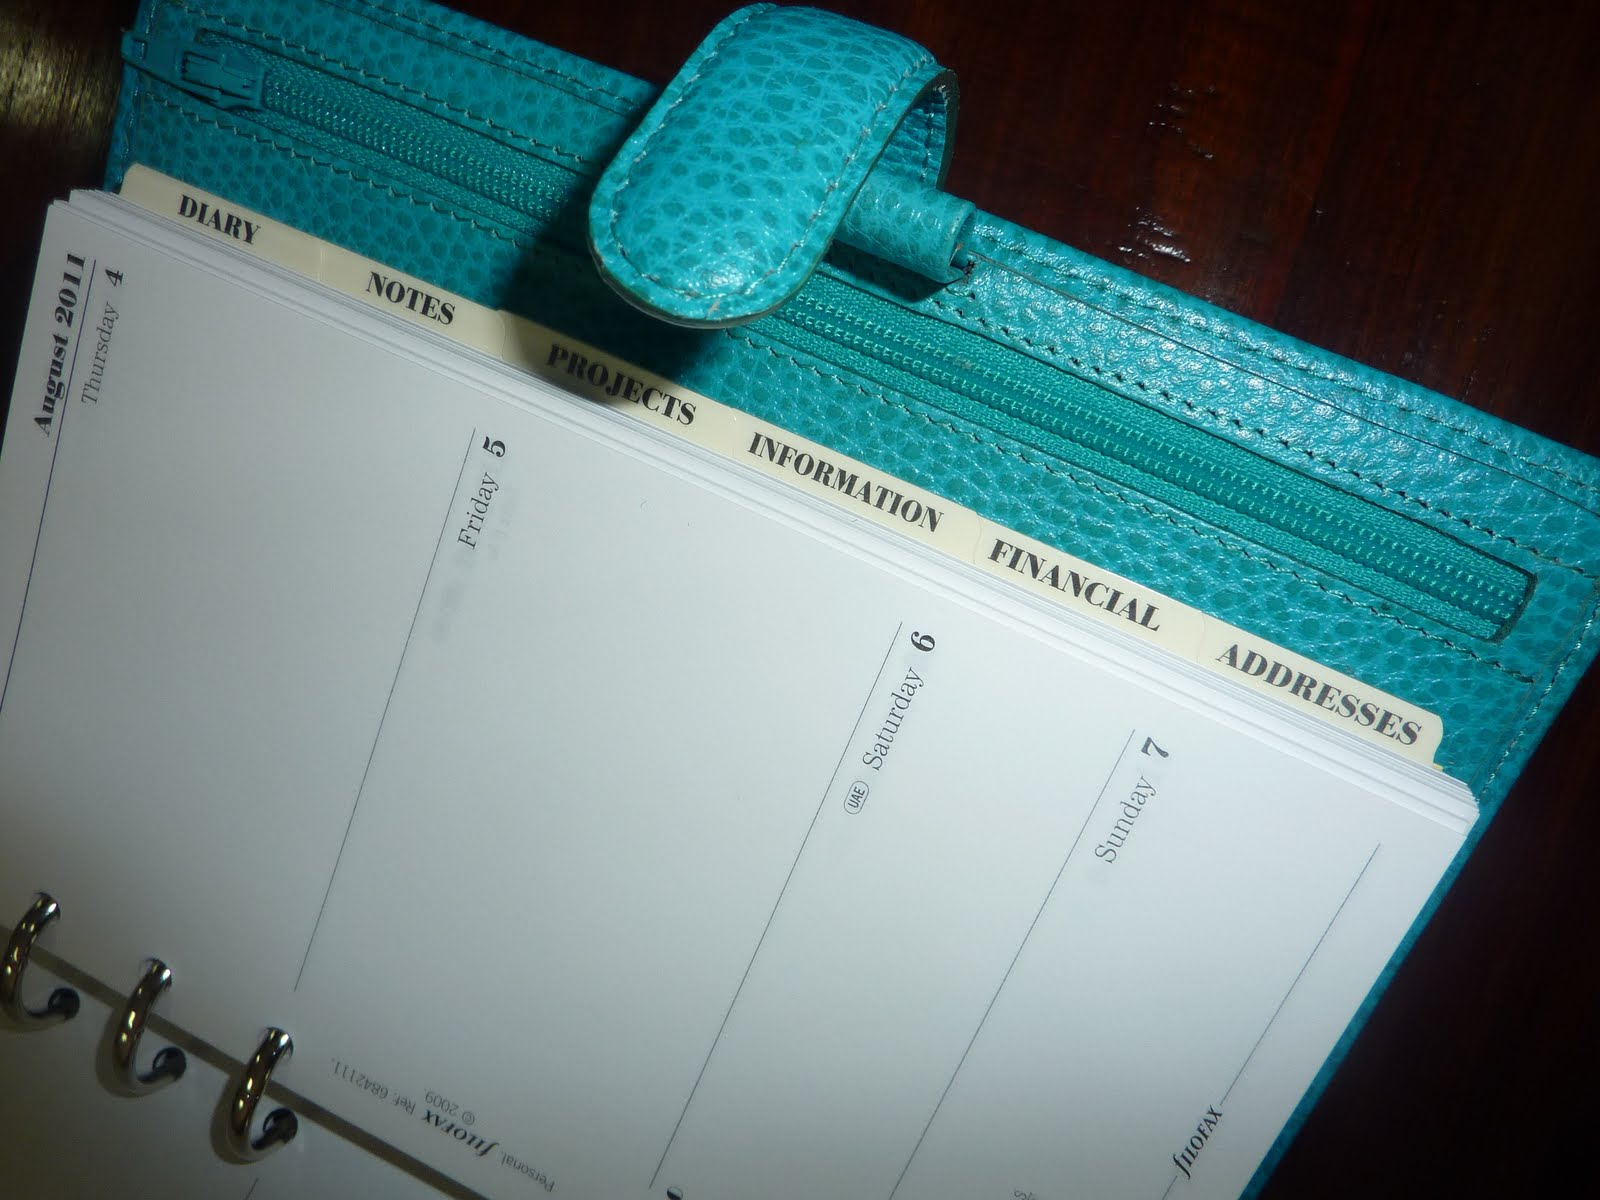 Planners & Organizers Disciplined Franklin Covey Full Grain Leather Double Sided 7 Ring 11 X 9 Planner Organizer